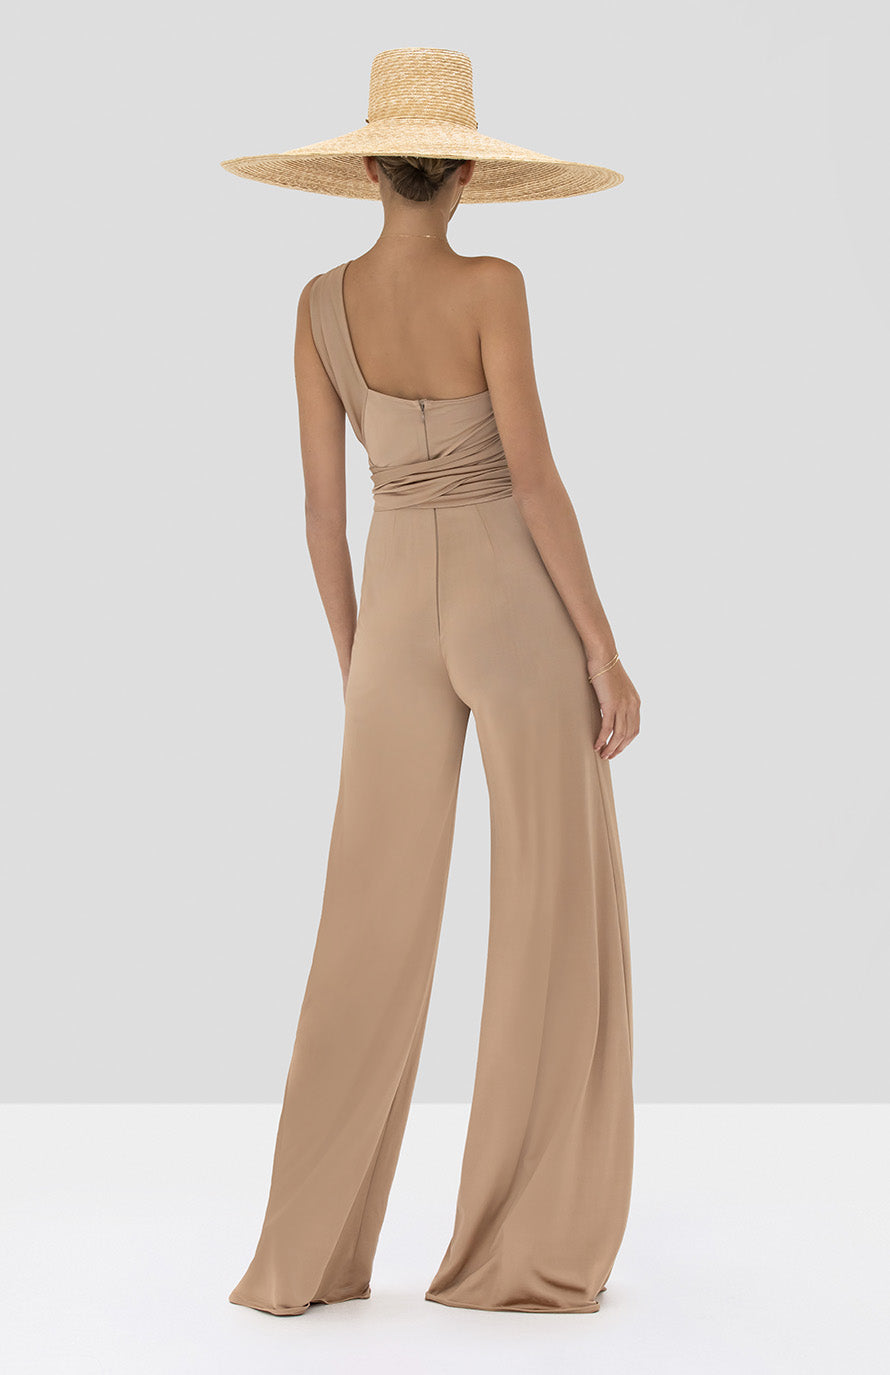 Alexis Parson Jumpsuit in Tan from the Spring Summer 2020 Collection - Rear View